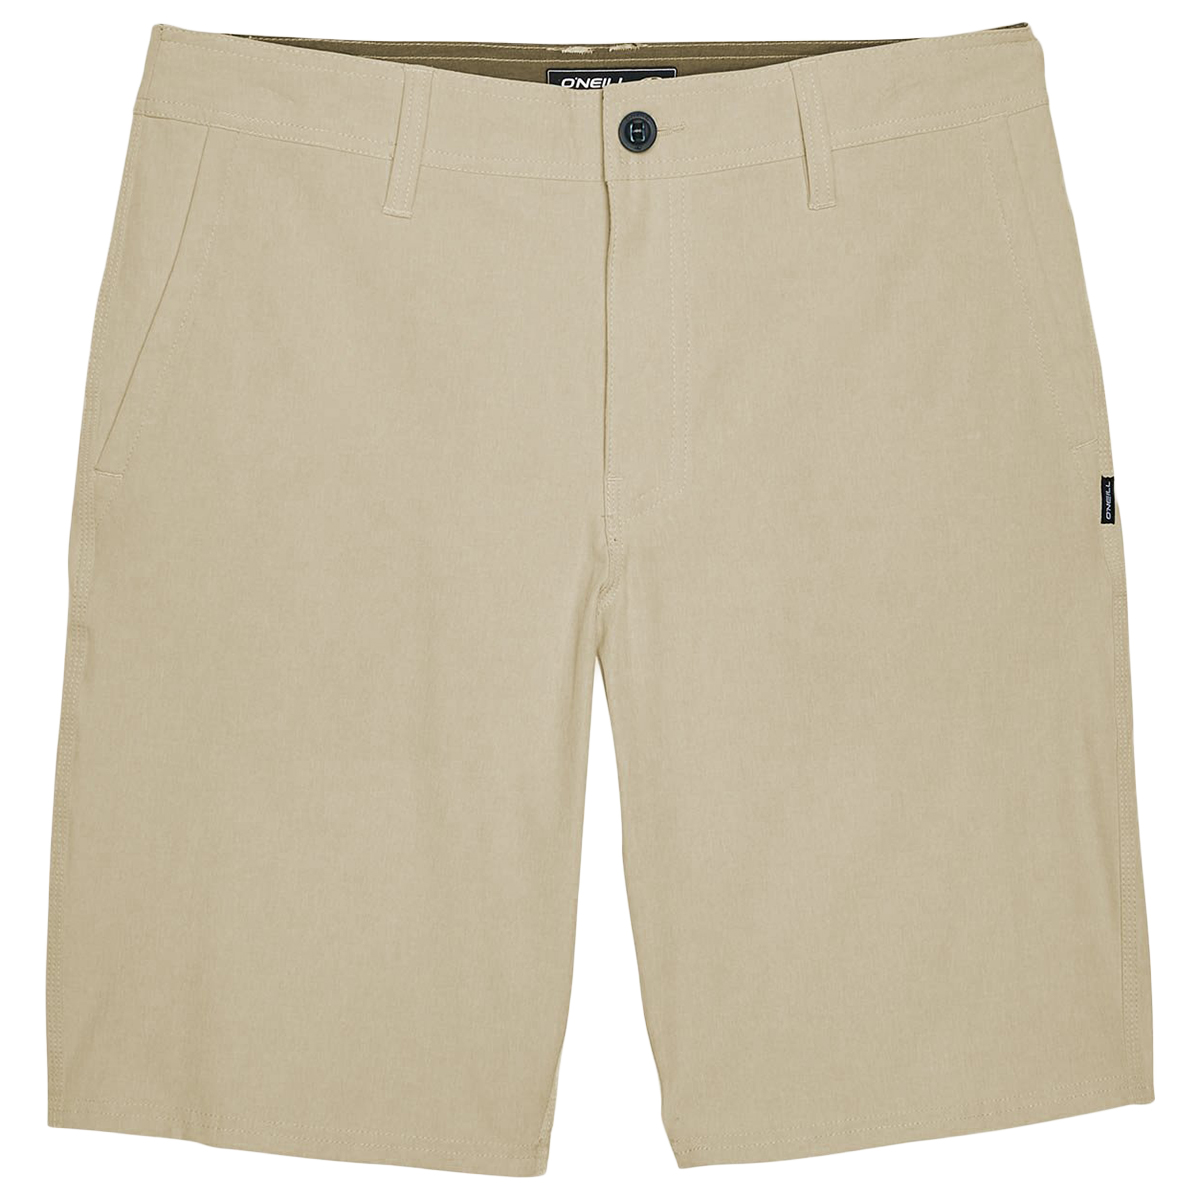 O'neill Men's Reserve Heather Hybrid Shorts - Brown, 38